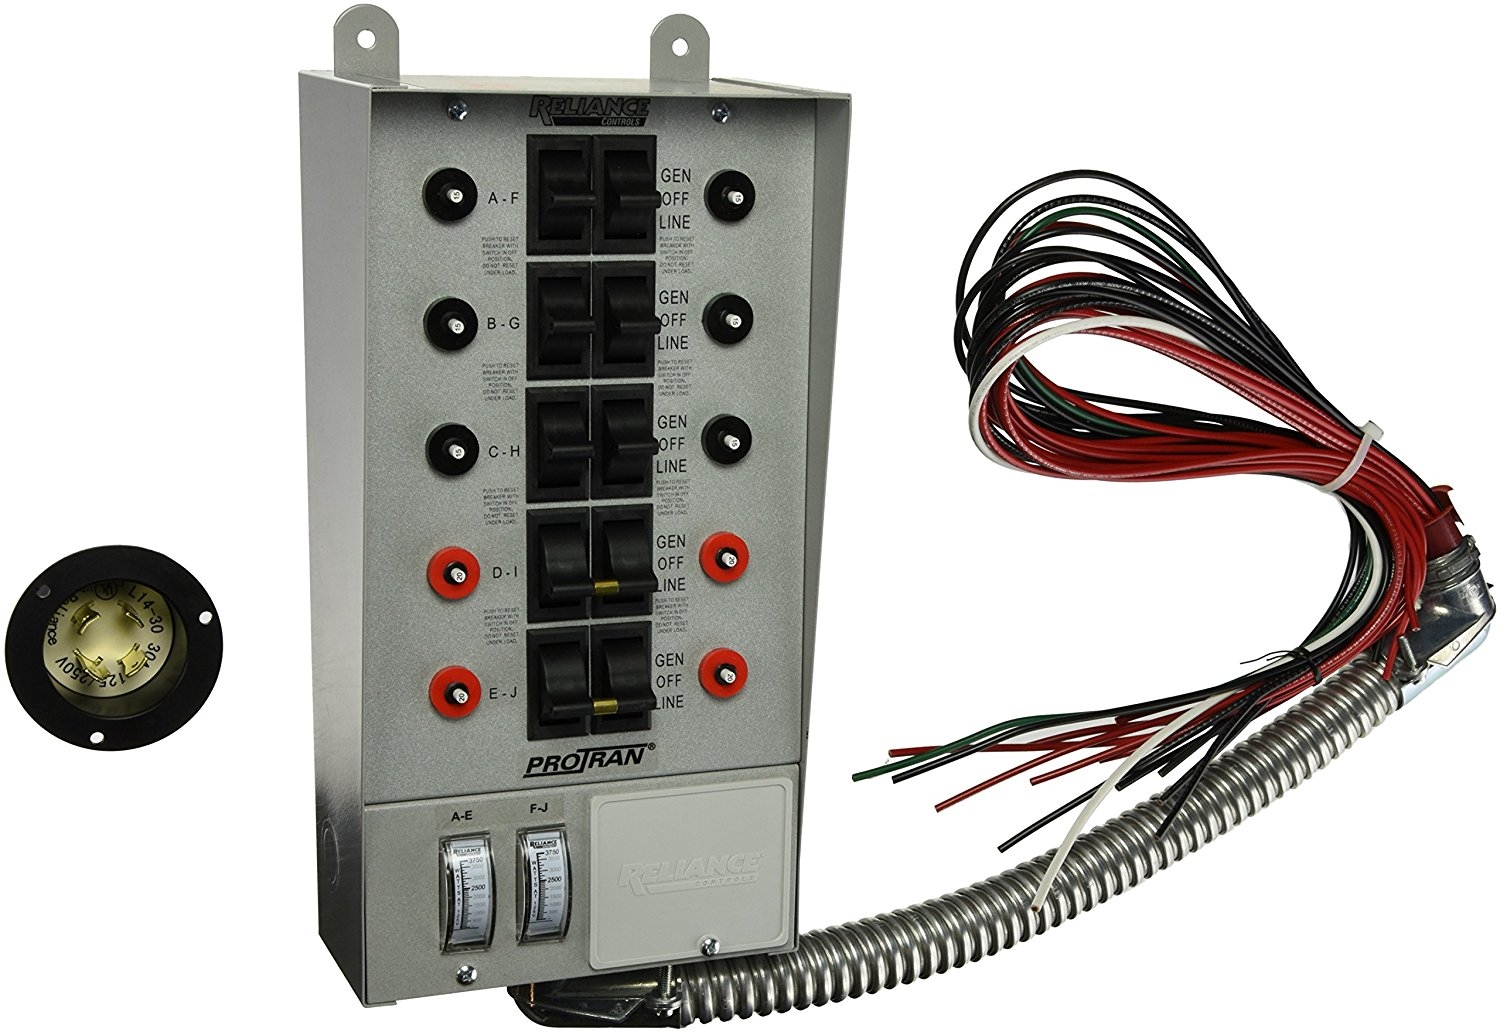 protran transfer switch wiring diagram Download-Amazon Reliance Controls Corporation A Pro Tran 30 Amp At Generator Transfer Switch Wiring Diagram 20-b